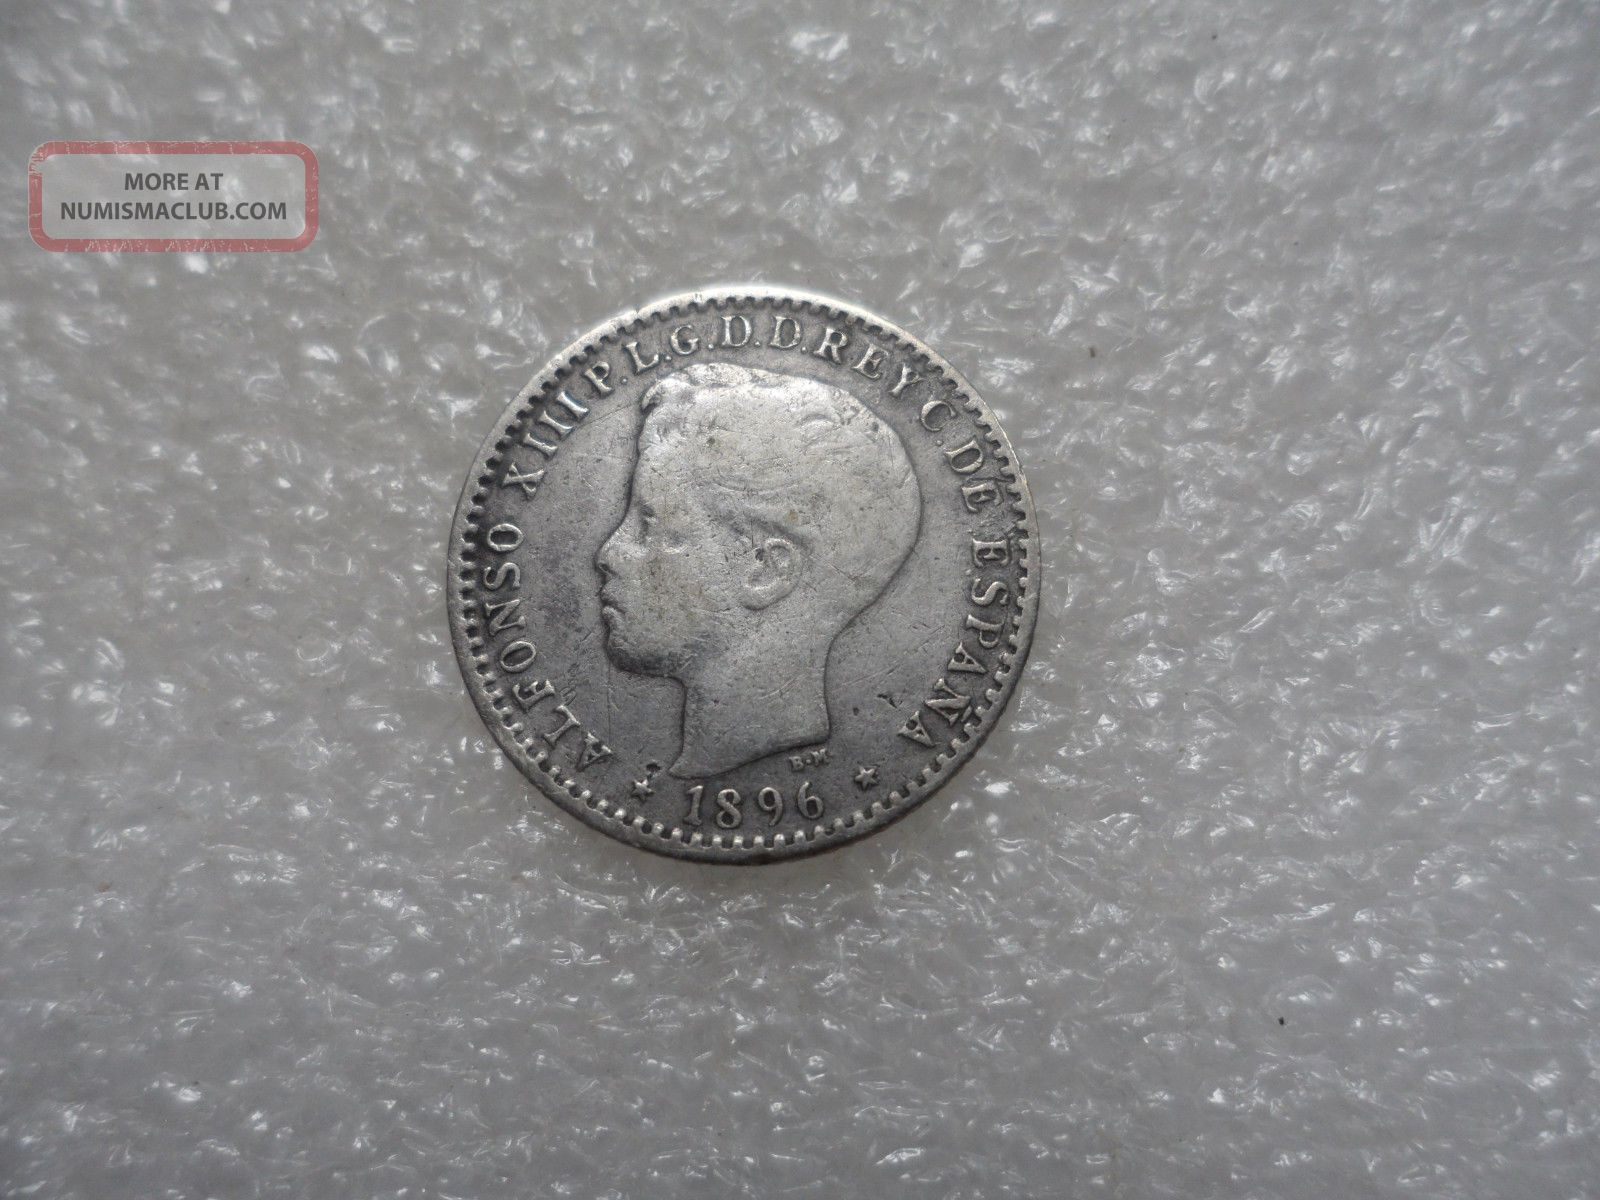 1896 Puerto Rico 10 Centavos Coin (f) On Silver  A Very Scarce Silver One North & Central America photo